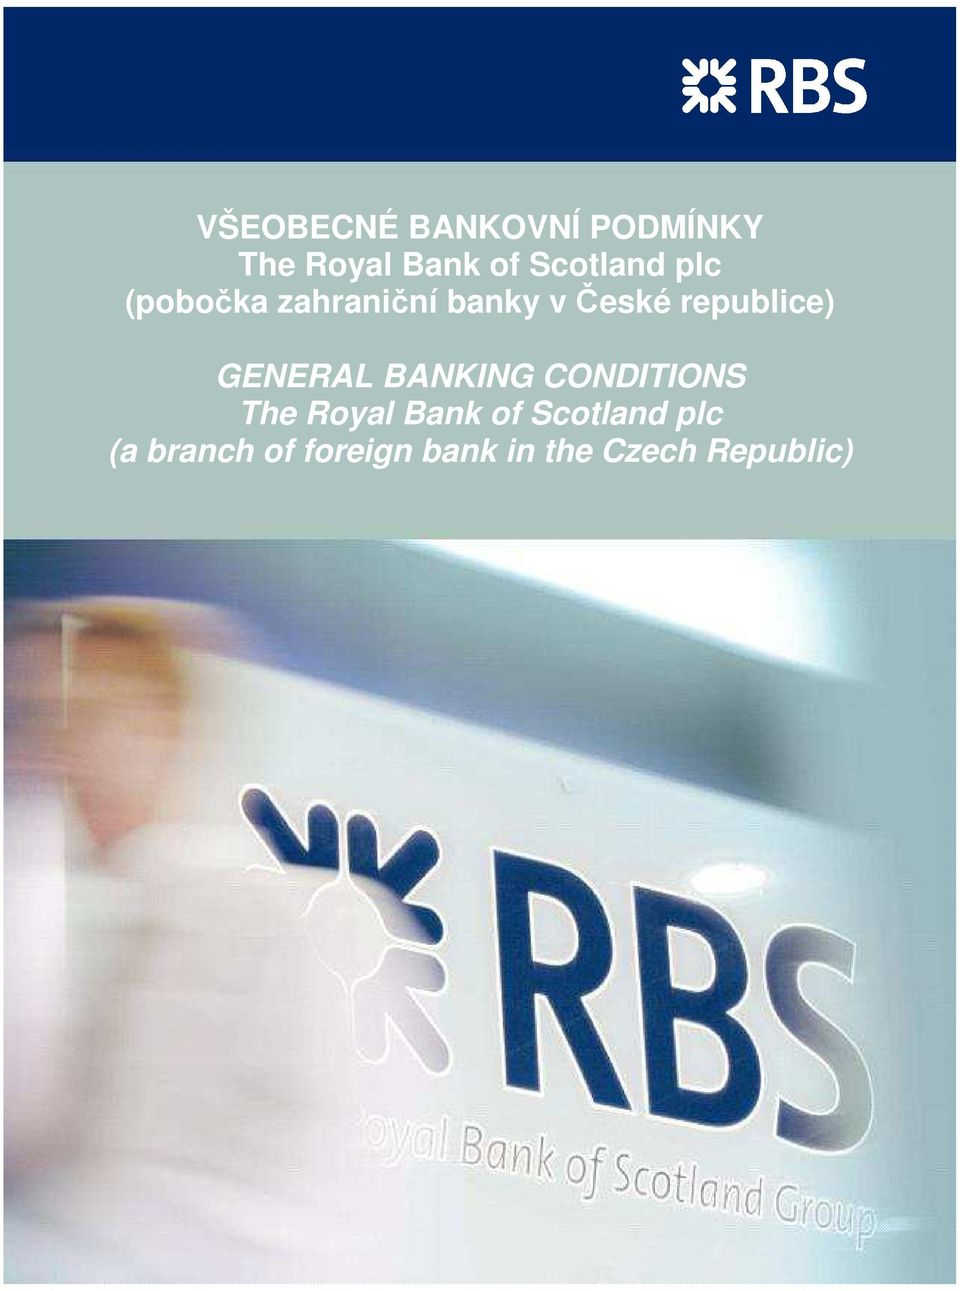 republice) GENERAL BANKING CONDITIONS The Royal Bank